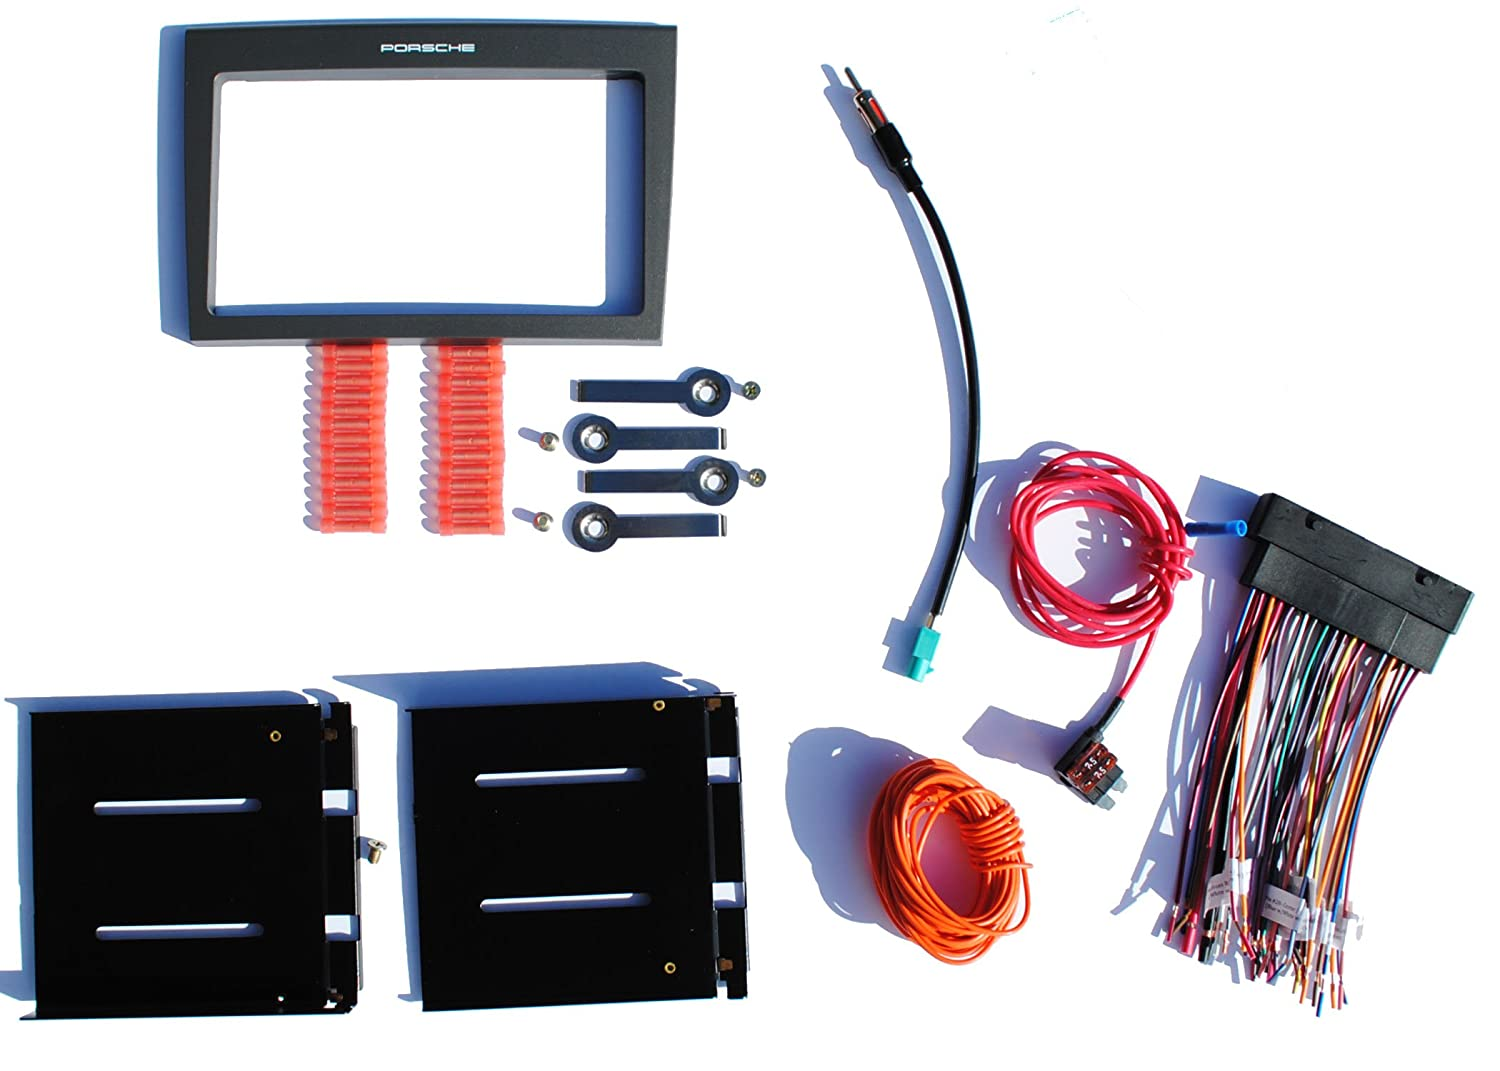 Installation Dash Kit Fits 2005 2008 Porsche Select 997 Radio Wiring Harness 2002 911 987 Models W Factory Bose Aftermarket Double Din Stereo Car Electronics